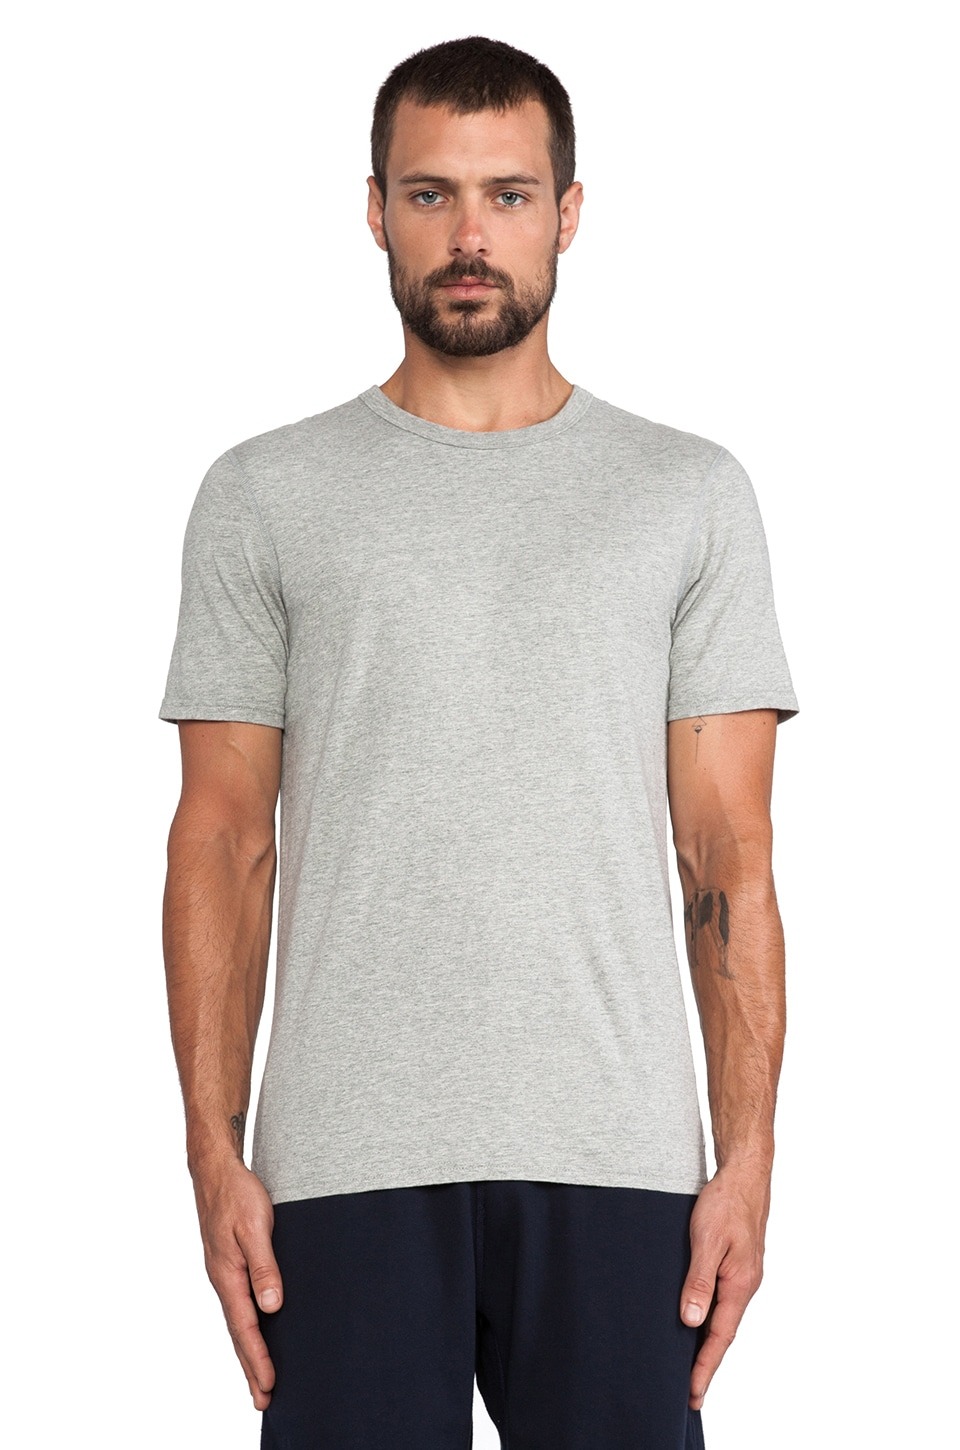 Reigning Champ 2-Pack Tee in Heather Grey